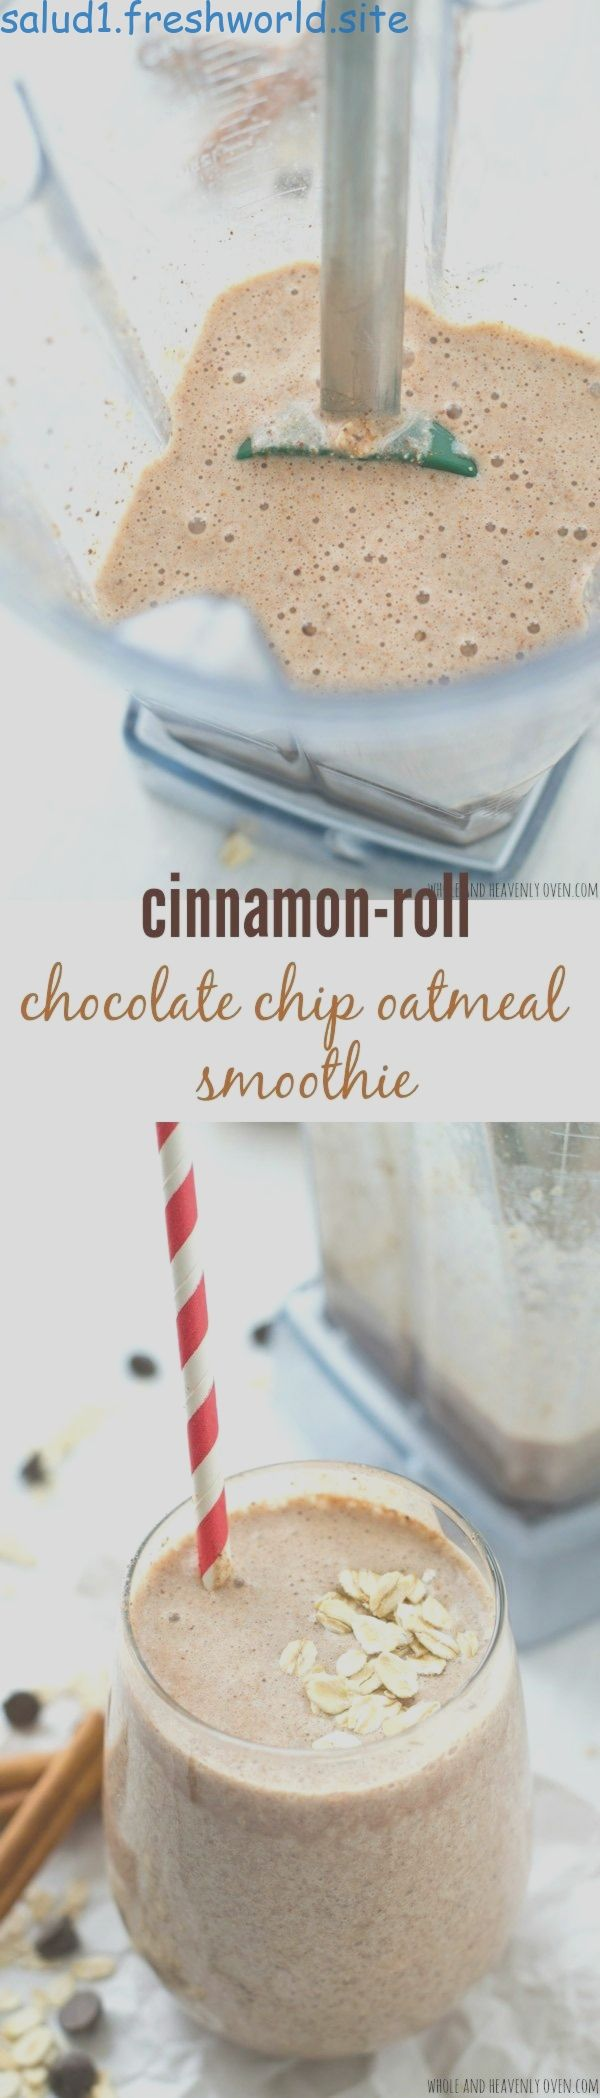 Super-creamy and loaded with a trio of cinnamon, chocolate, and oats, this filli..., Super-creamy and loaded with a trio of cinnamon, chocolate, and oats, this filli...,